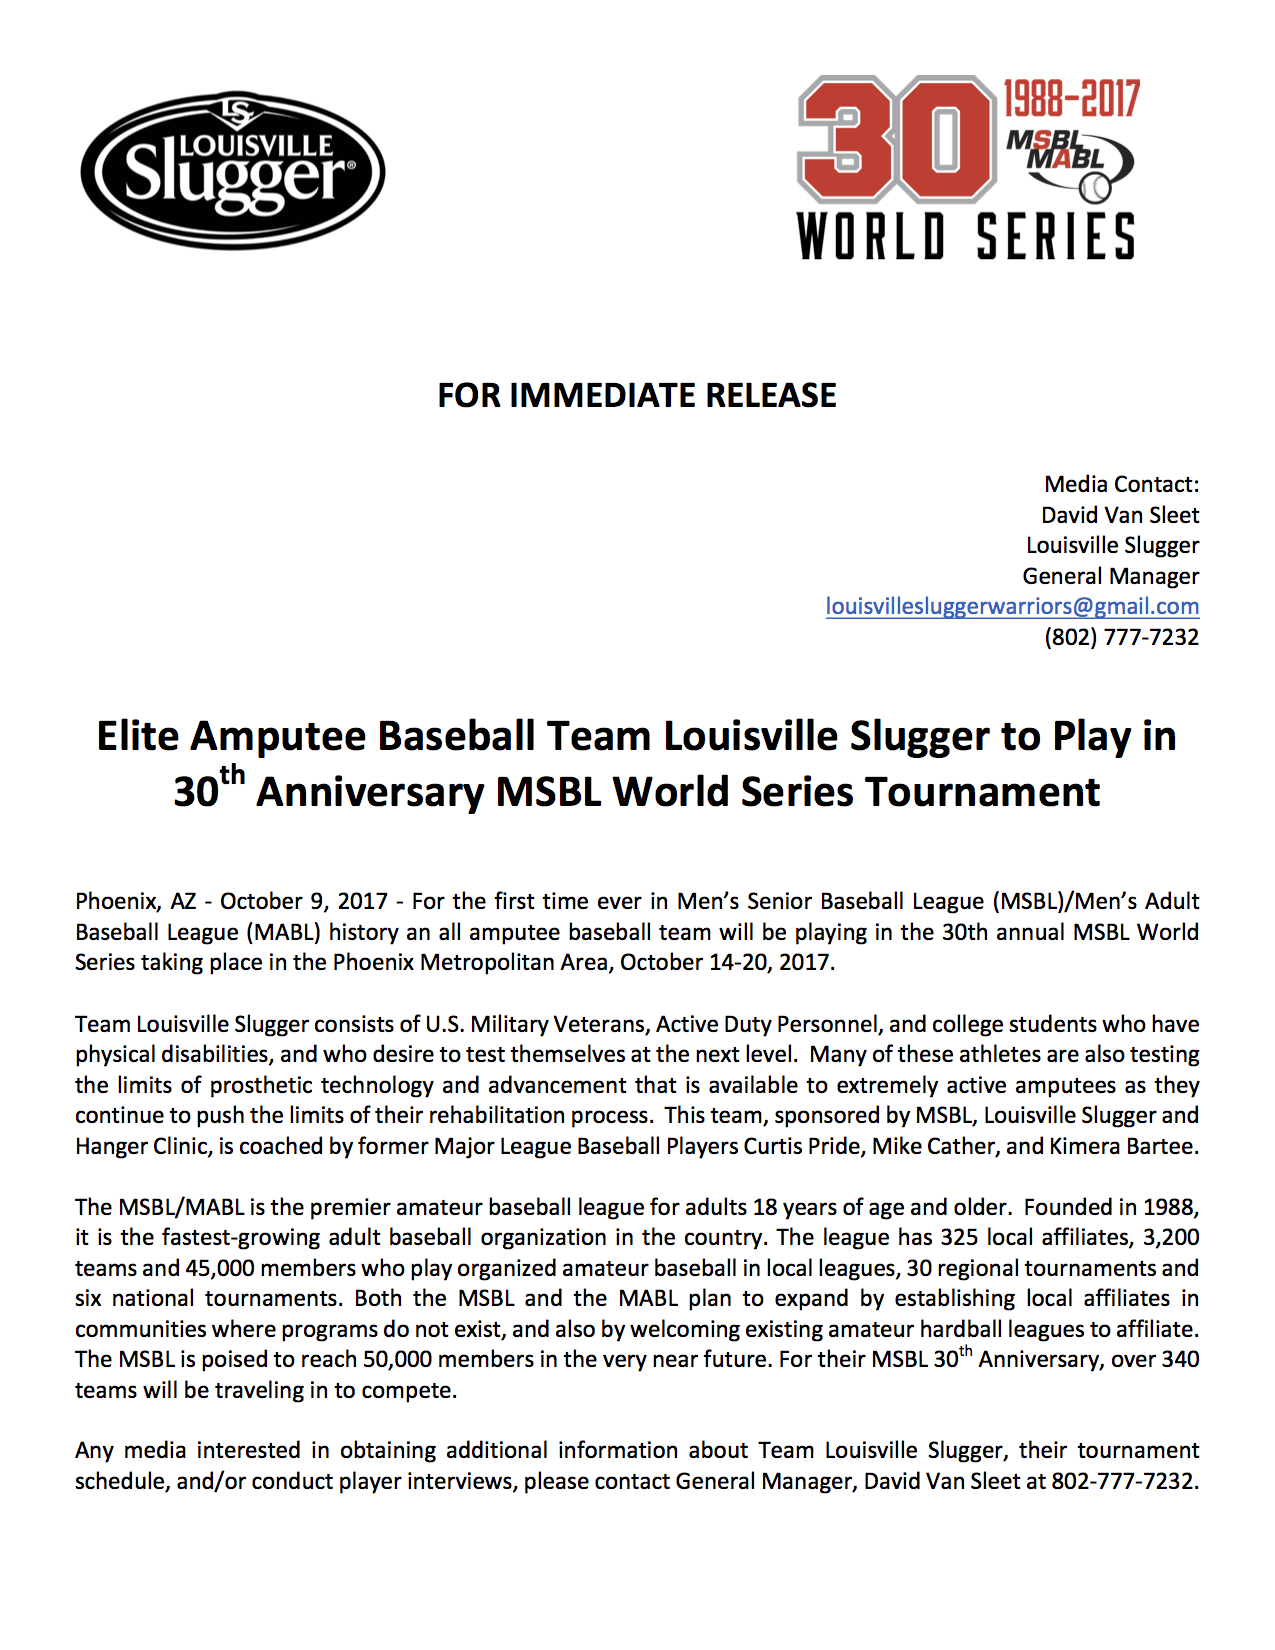 Elite-Amputee-Baseball-Team-Louisville-Slugger-to-Play-in-30th-Anniversary-MSBL-World-Series-Tournament